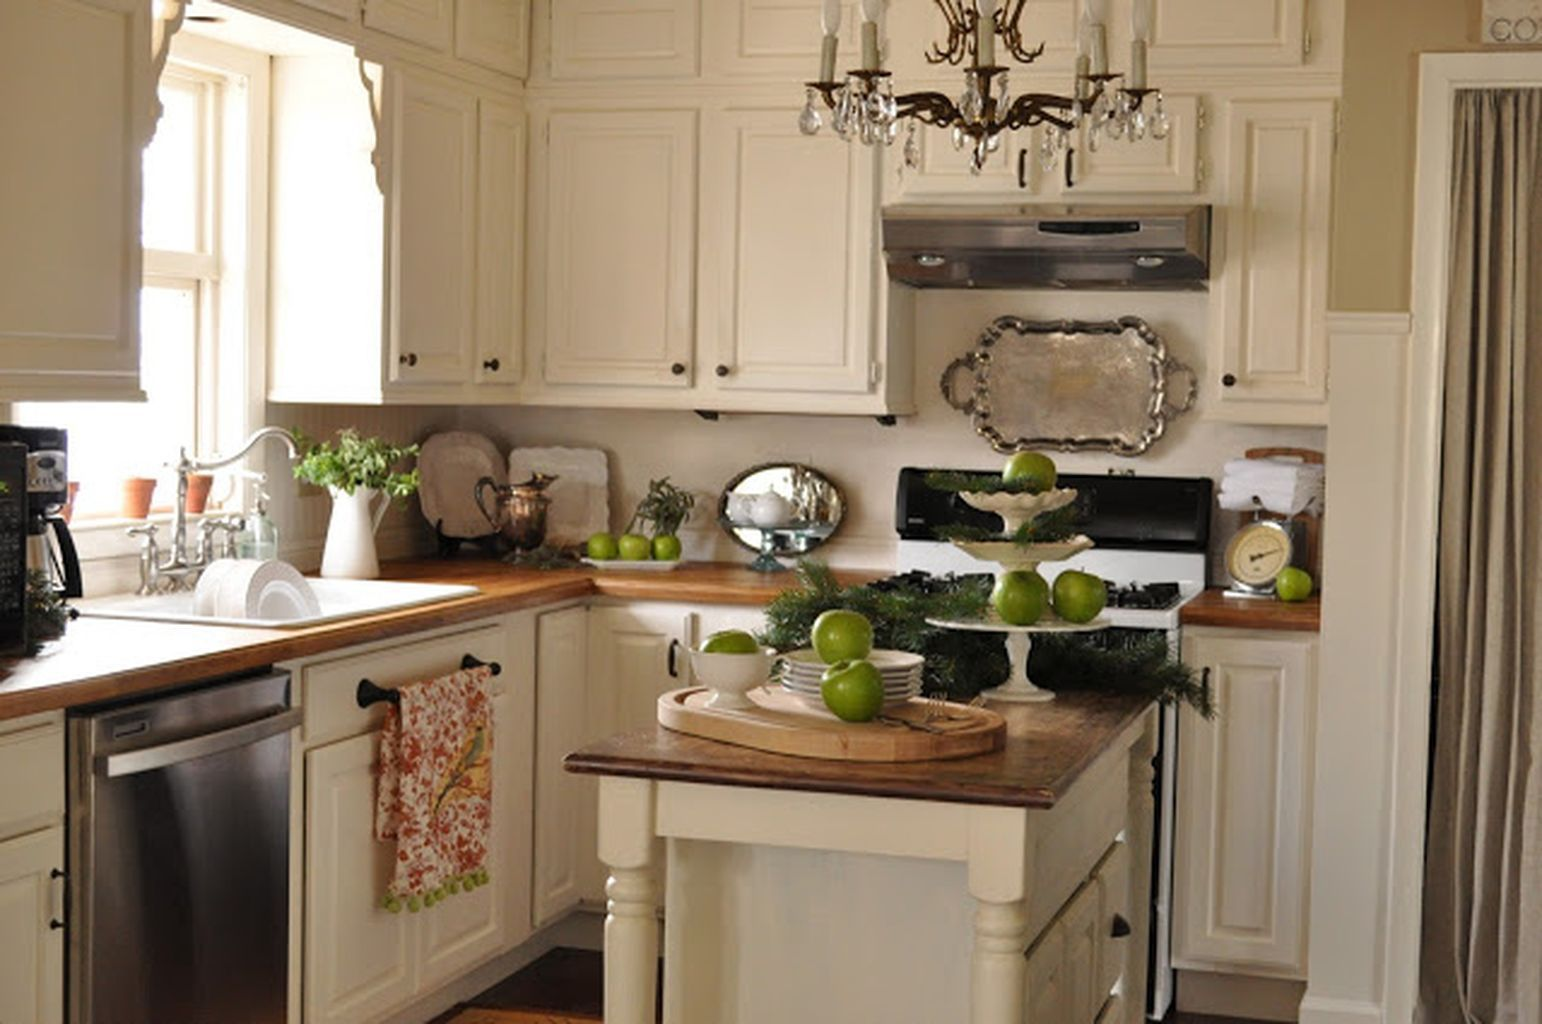 French Country Kitchen Budget cool french country kitchen ideas on a budget 47 | french country